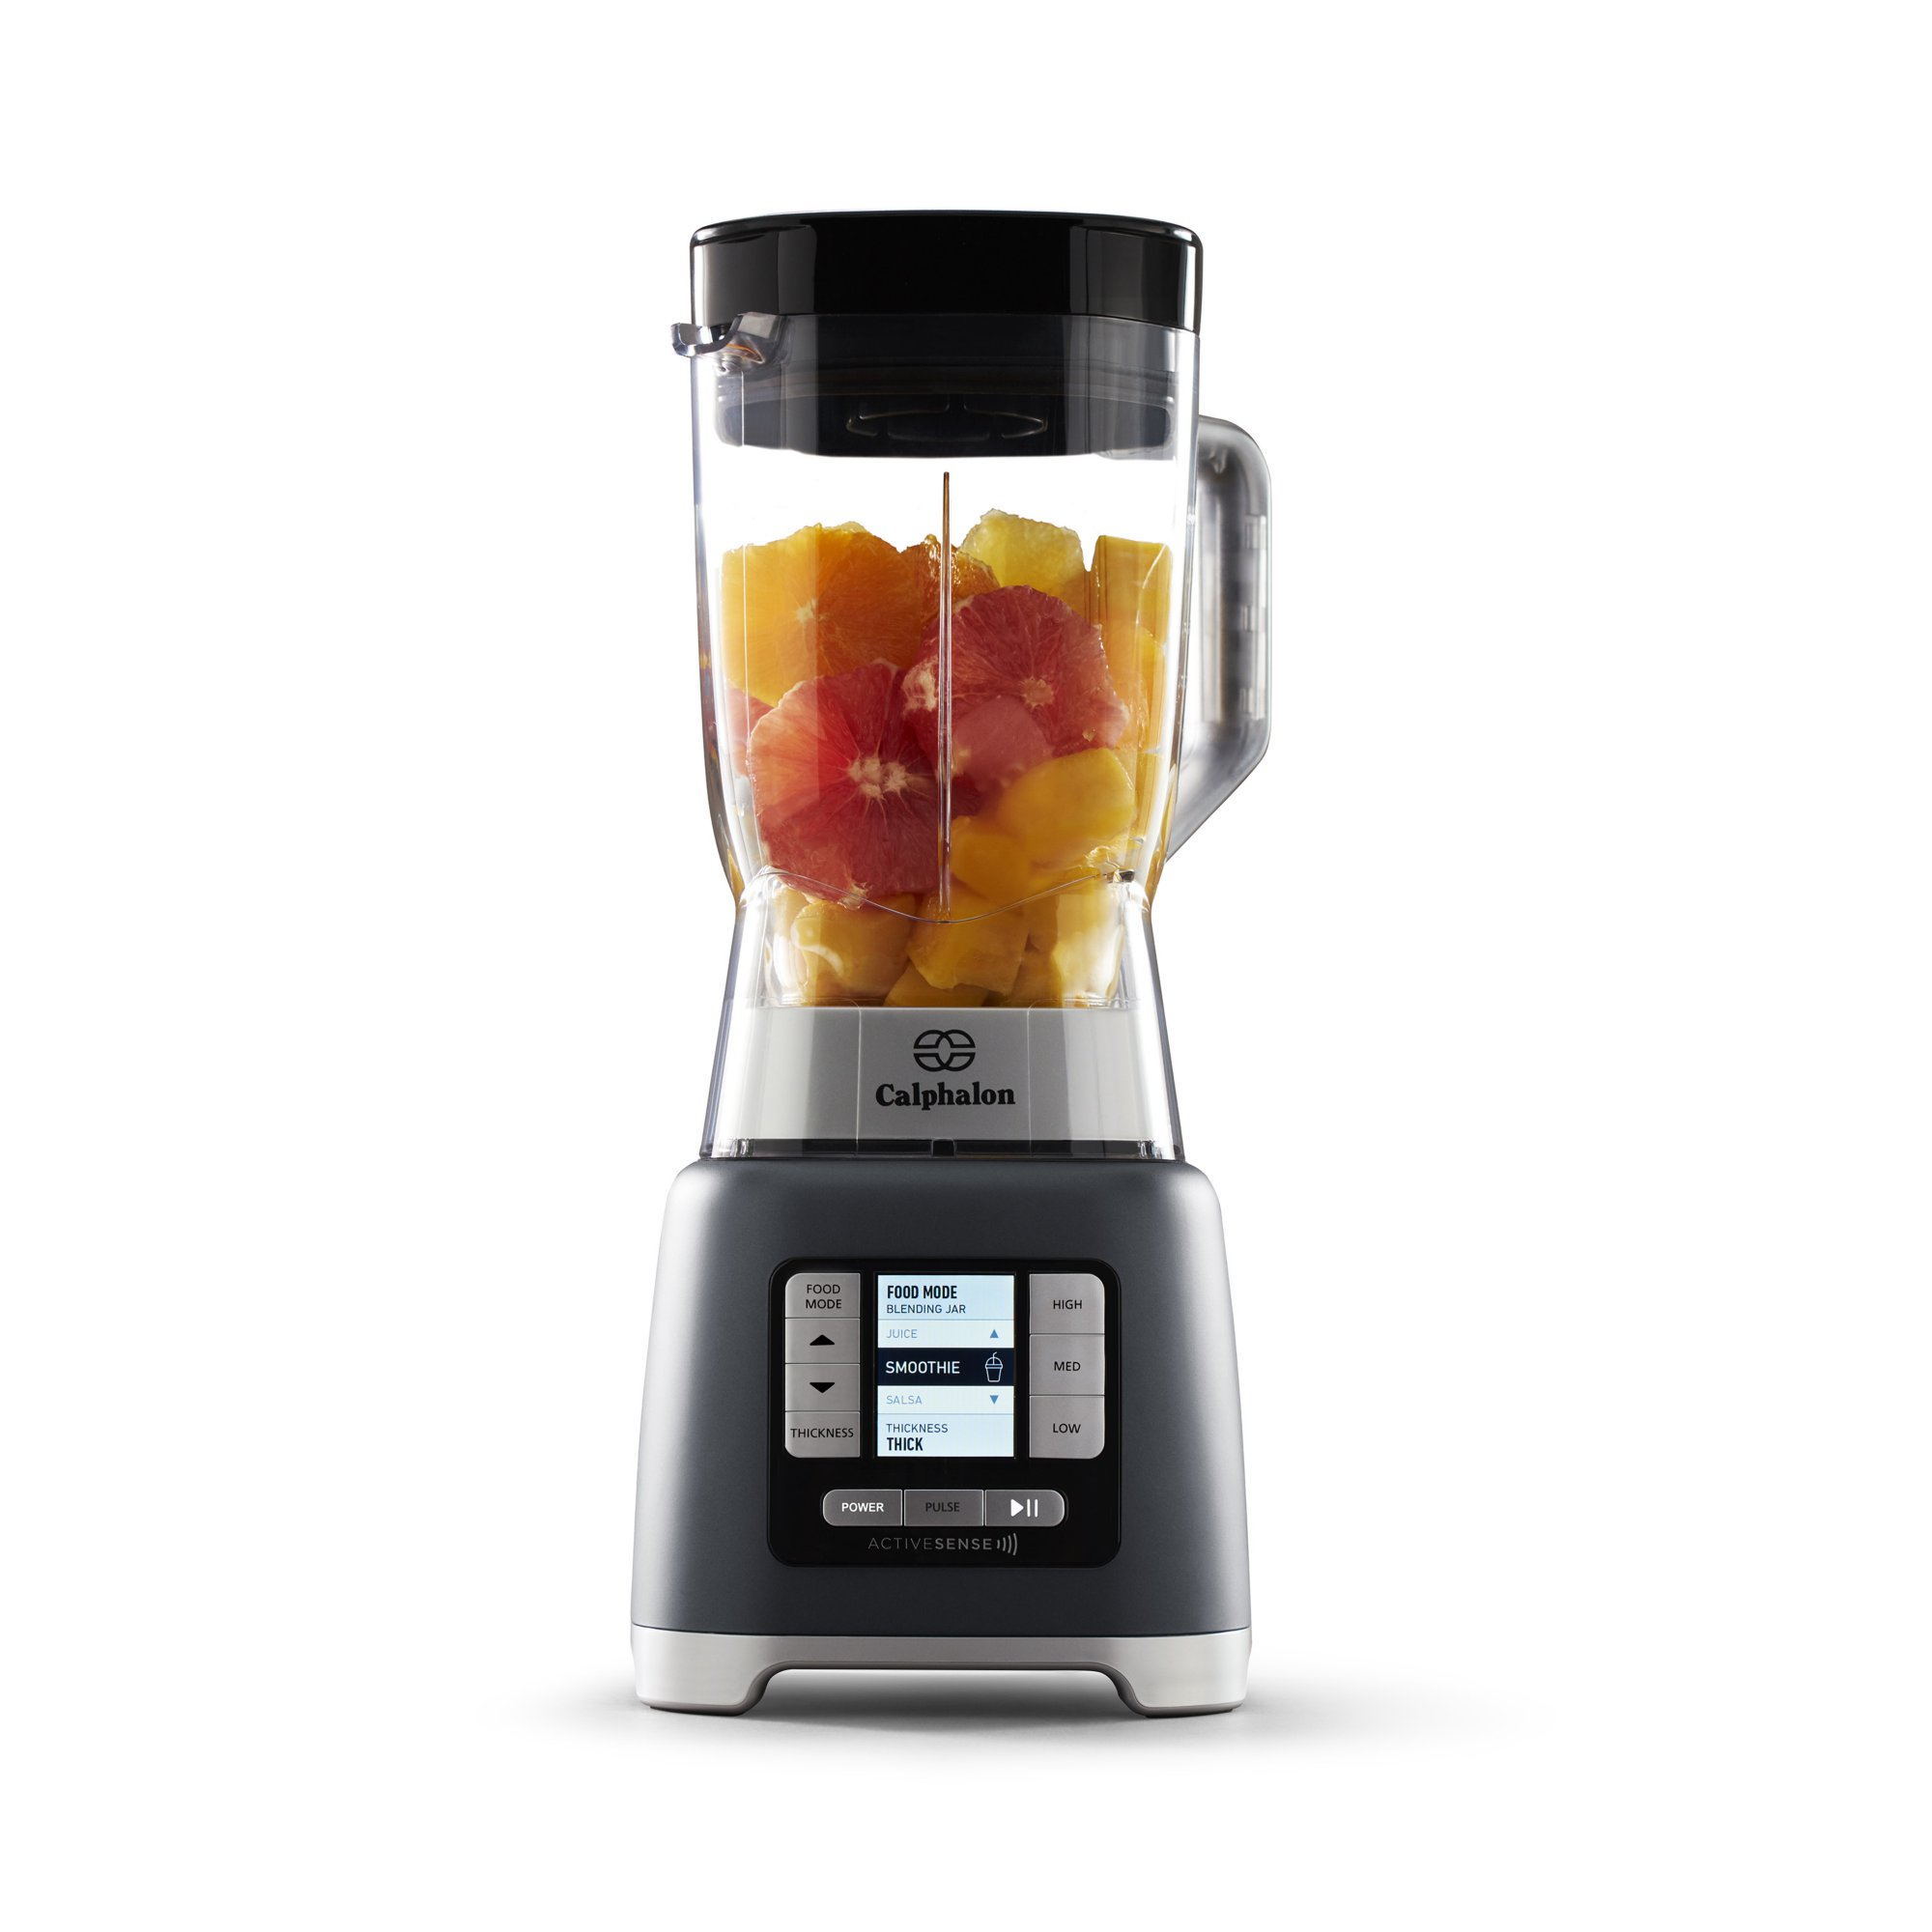 Calphalon Blenders